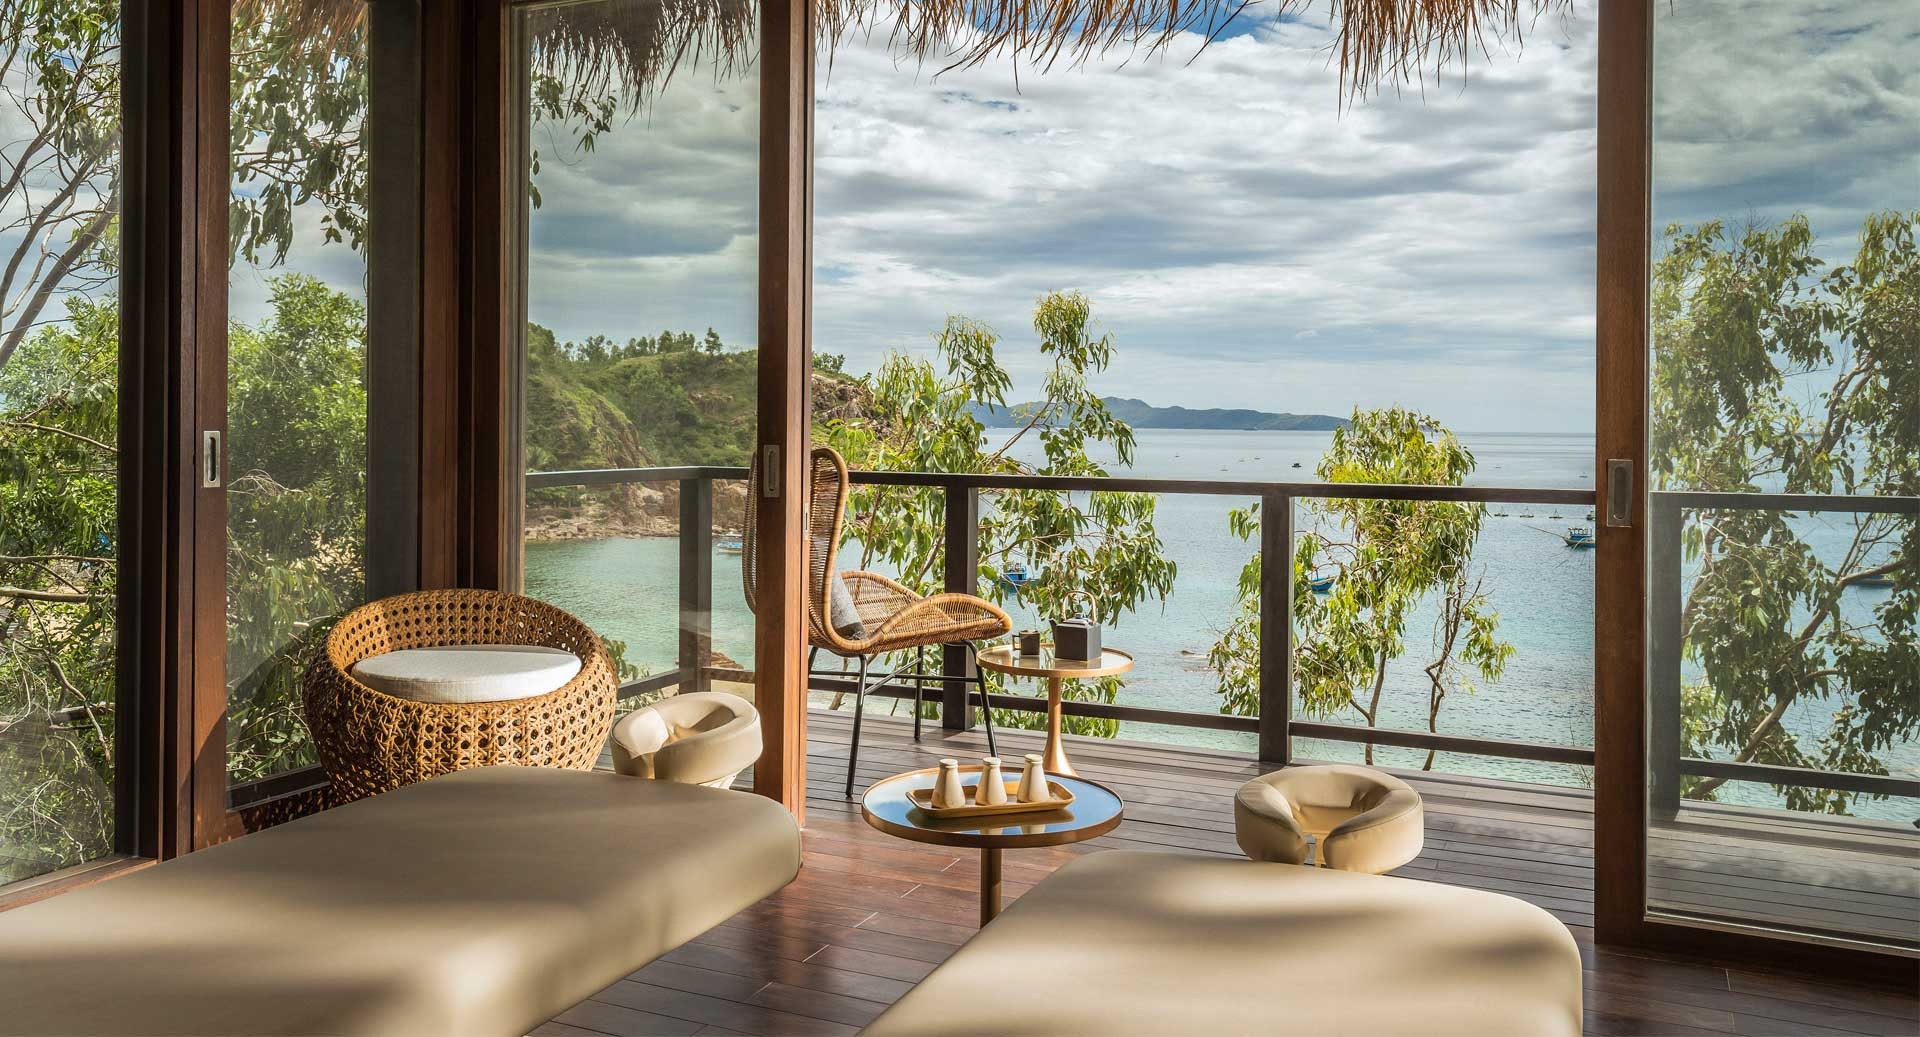 Anantara Quy Nhon Spa among Top Virtuoso 2019 Nominees for Best Wellness Program